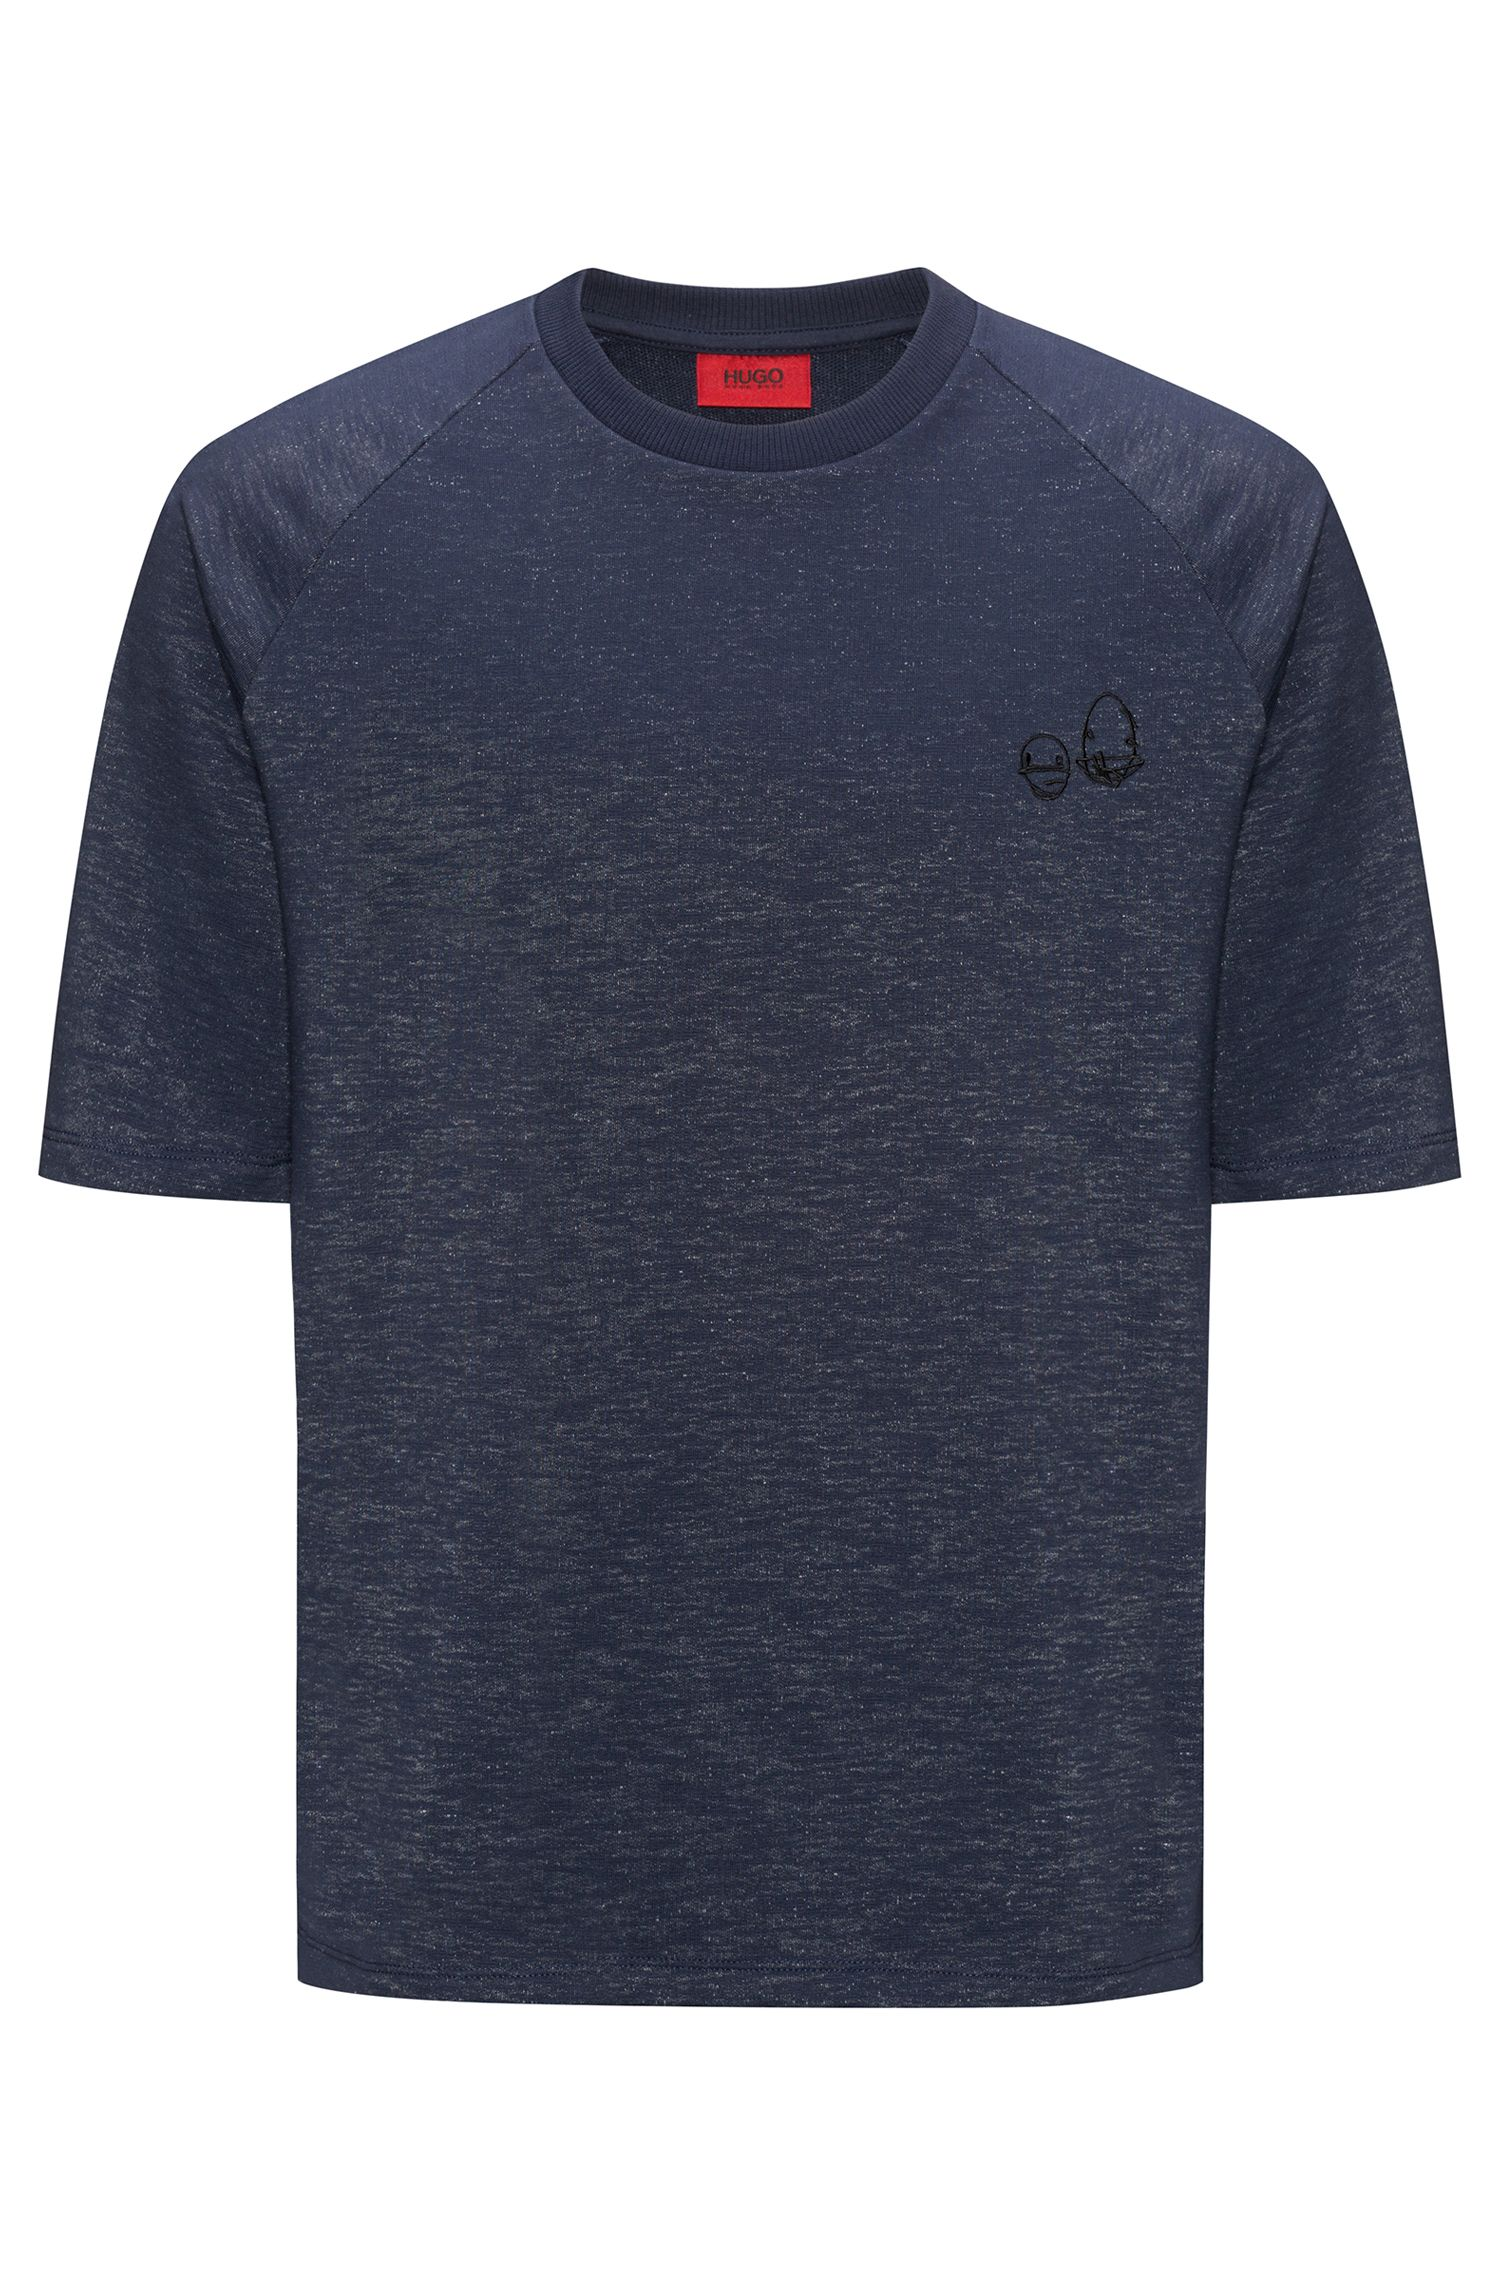 Short-sleeved sweatshirt in a cotton blend